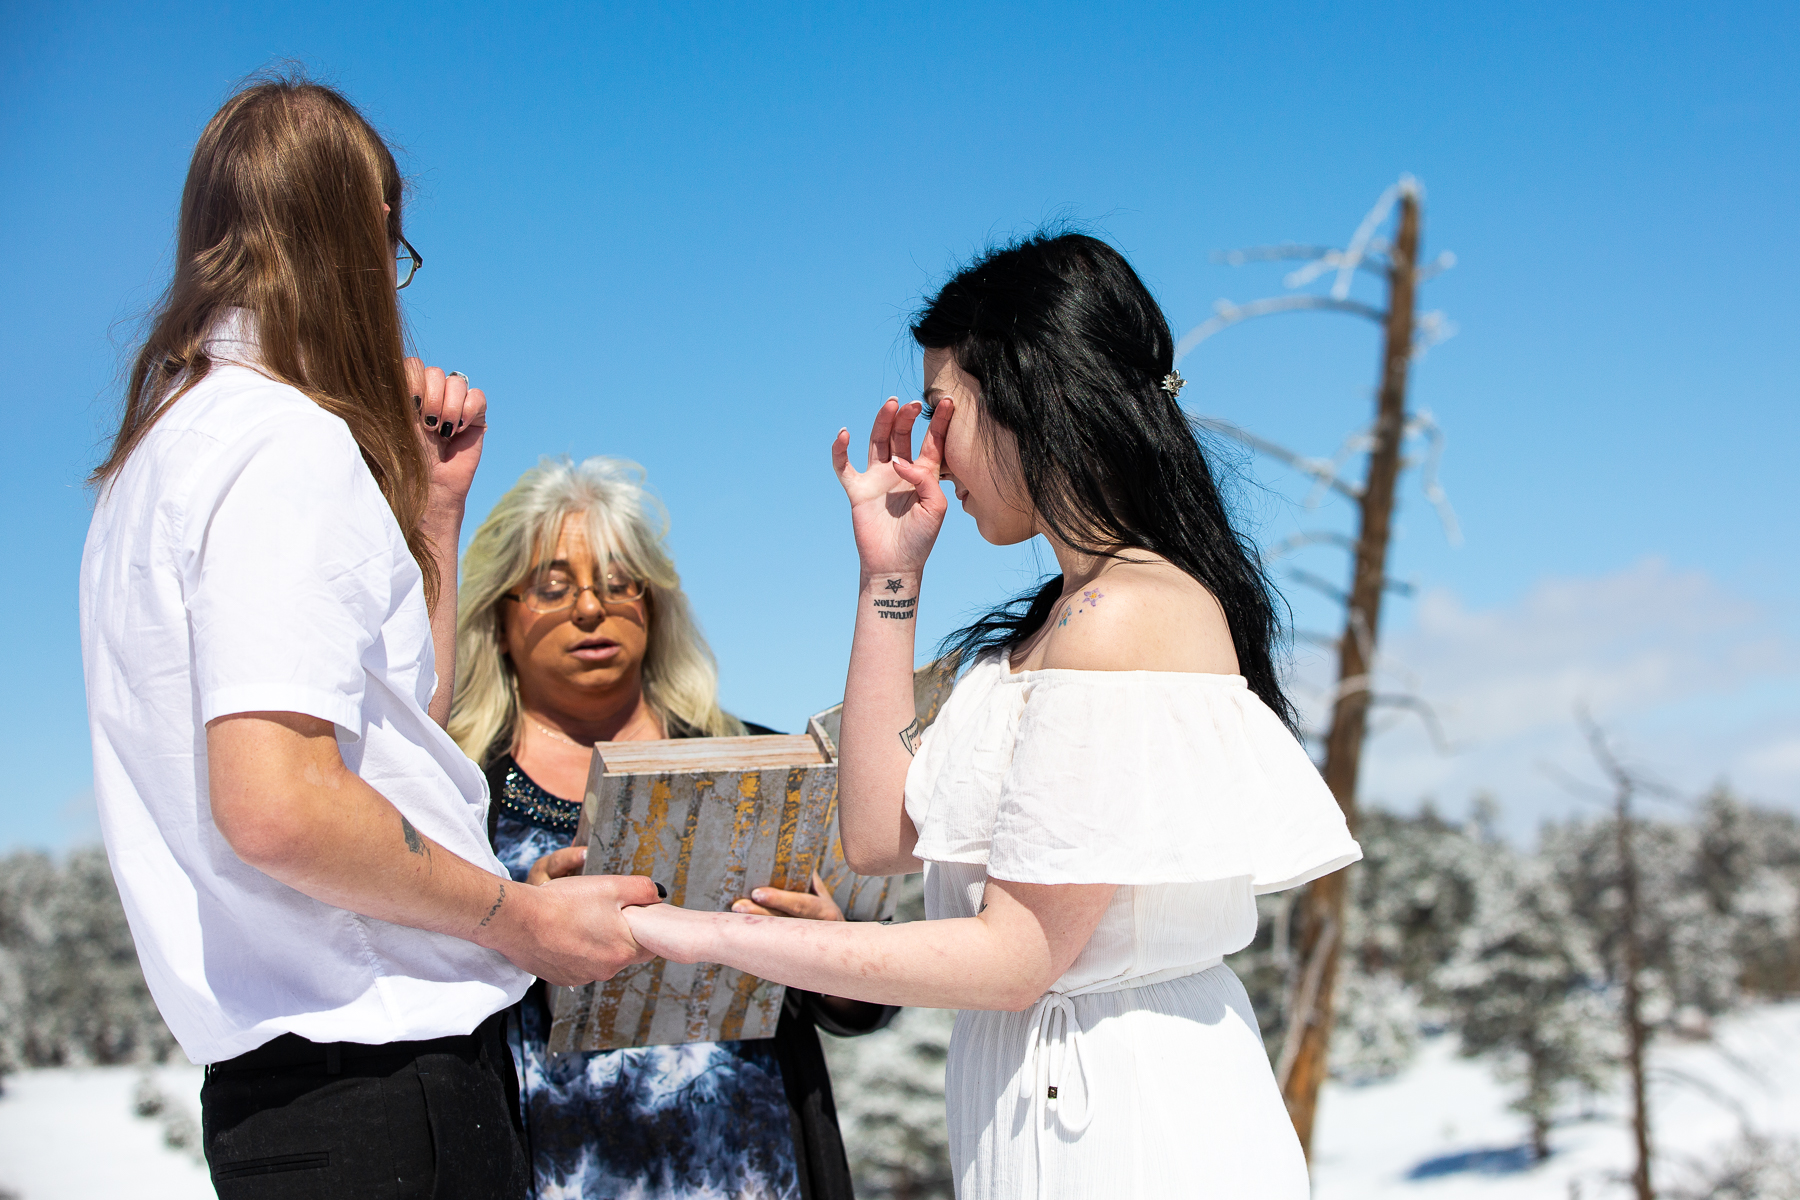 Wedding and Elopement Photographers in Morrison, CO | The bride wipes away a tear in the crisp morning air